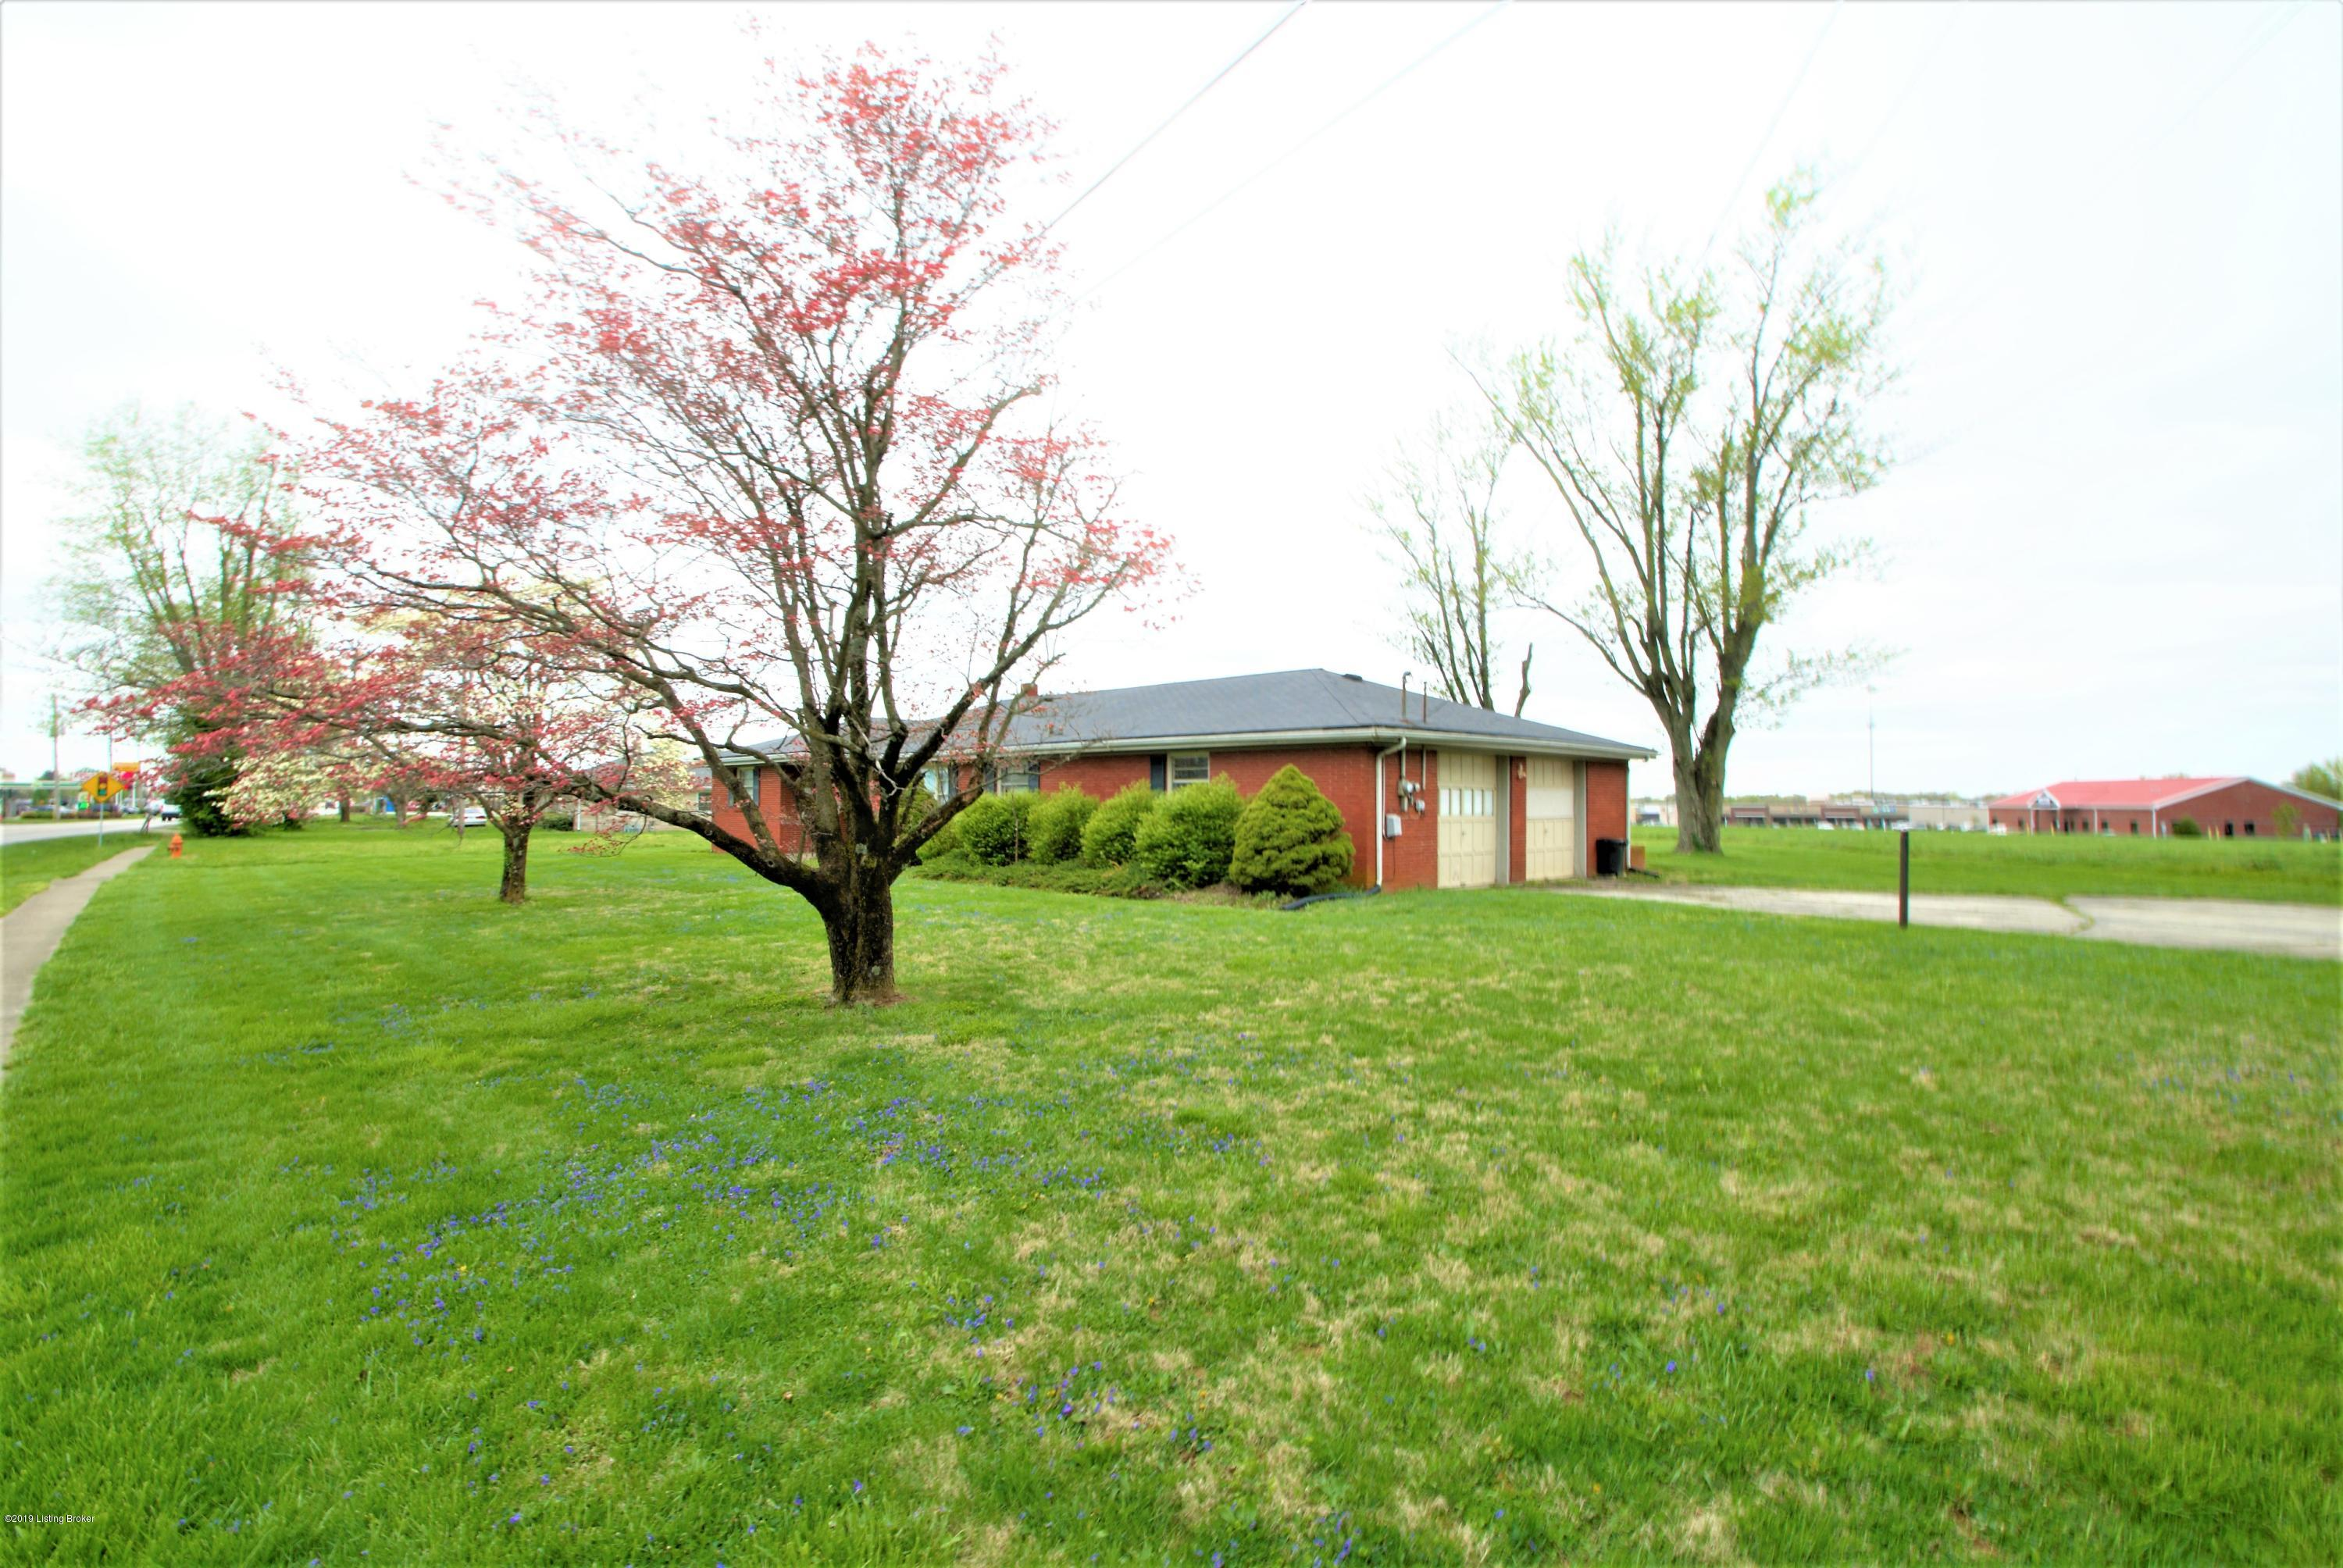 11254 HWY 44, Mt Washington, Kentucky 40047, 2 Bedrooms Bedrooms, 4 Rooms Rooms,2 BathroomsBathrooms,Residential,For Sale,HWY 44,1529348